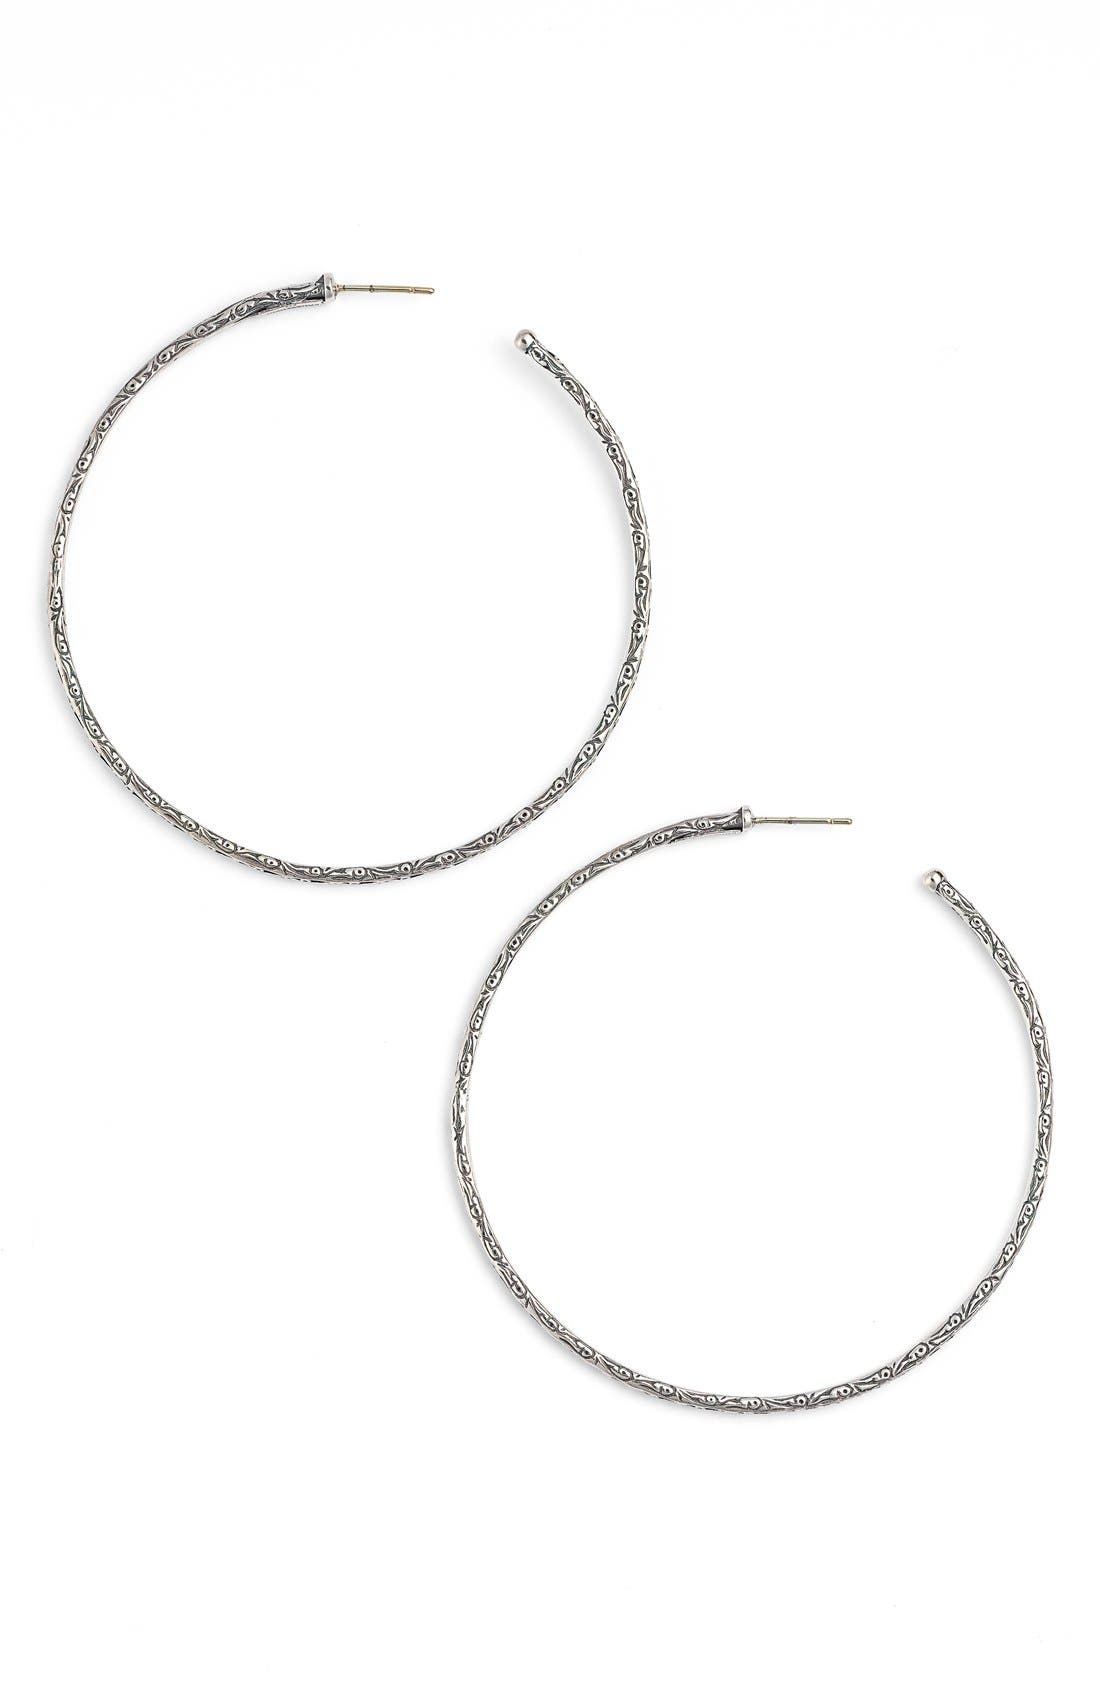 'Silver Classics' Large Etched Hoop Earrings,                         Main,                         color, Silver